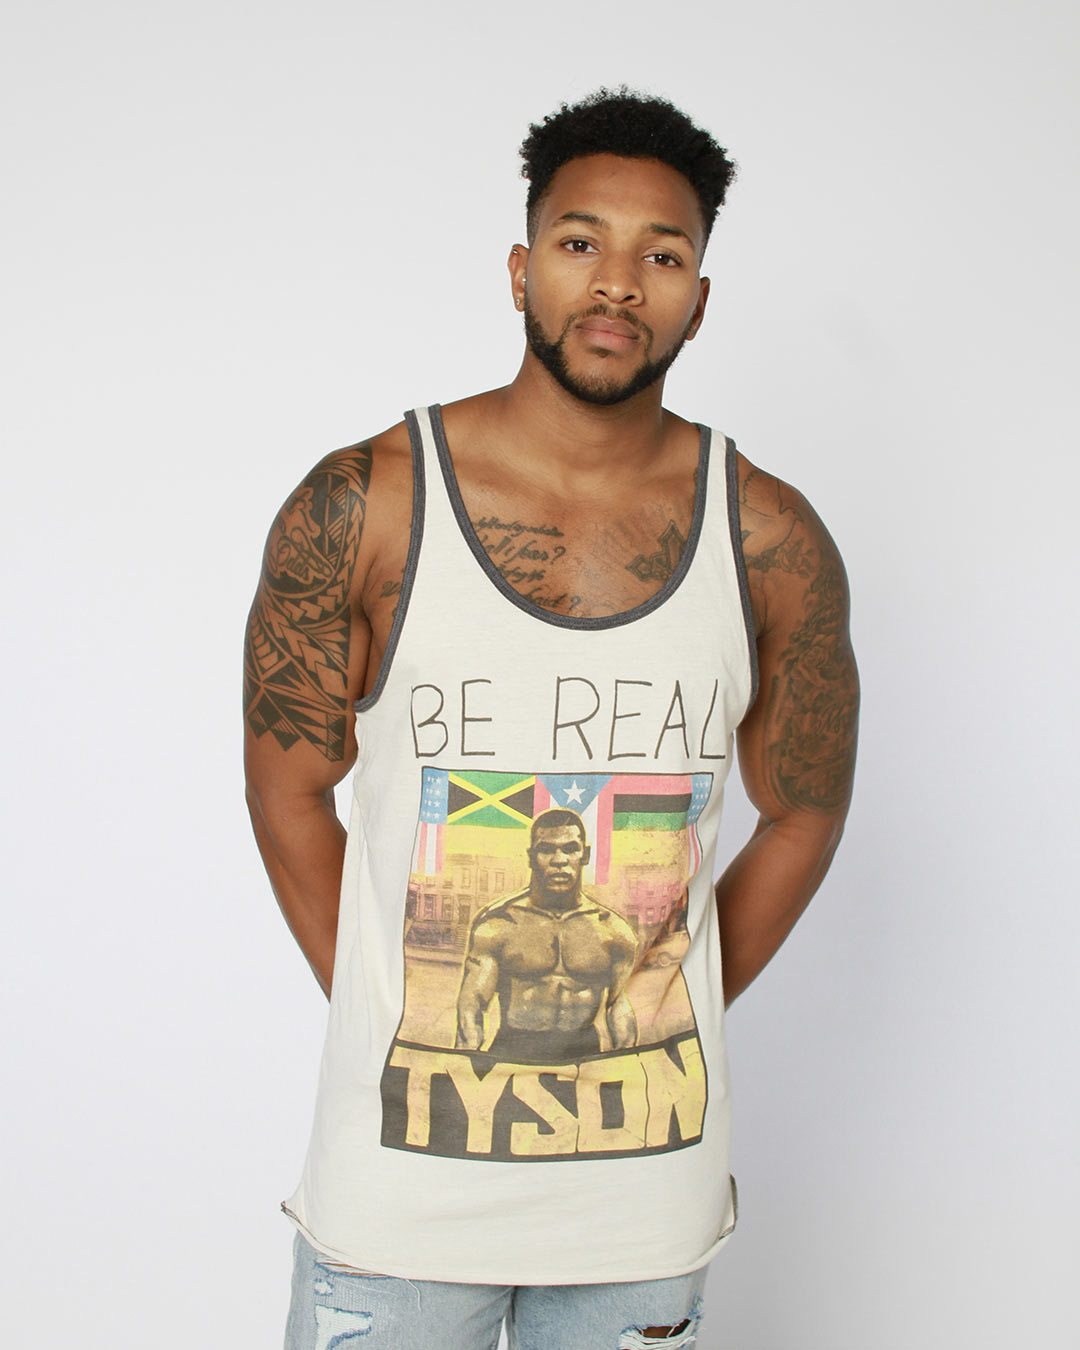 Tyson 'Be Real' Portrait Tank